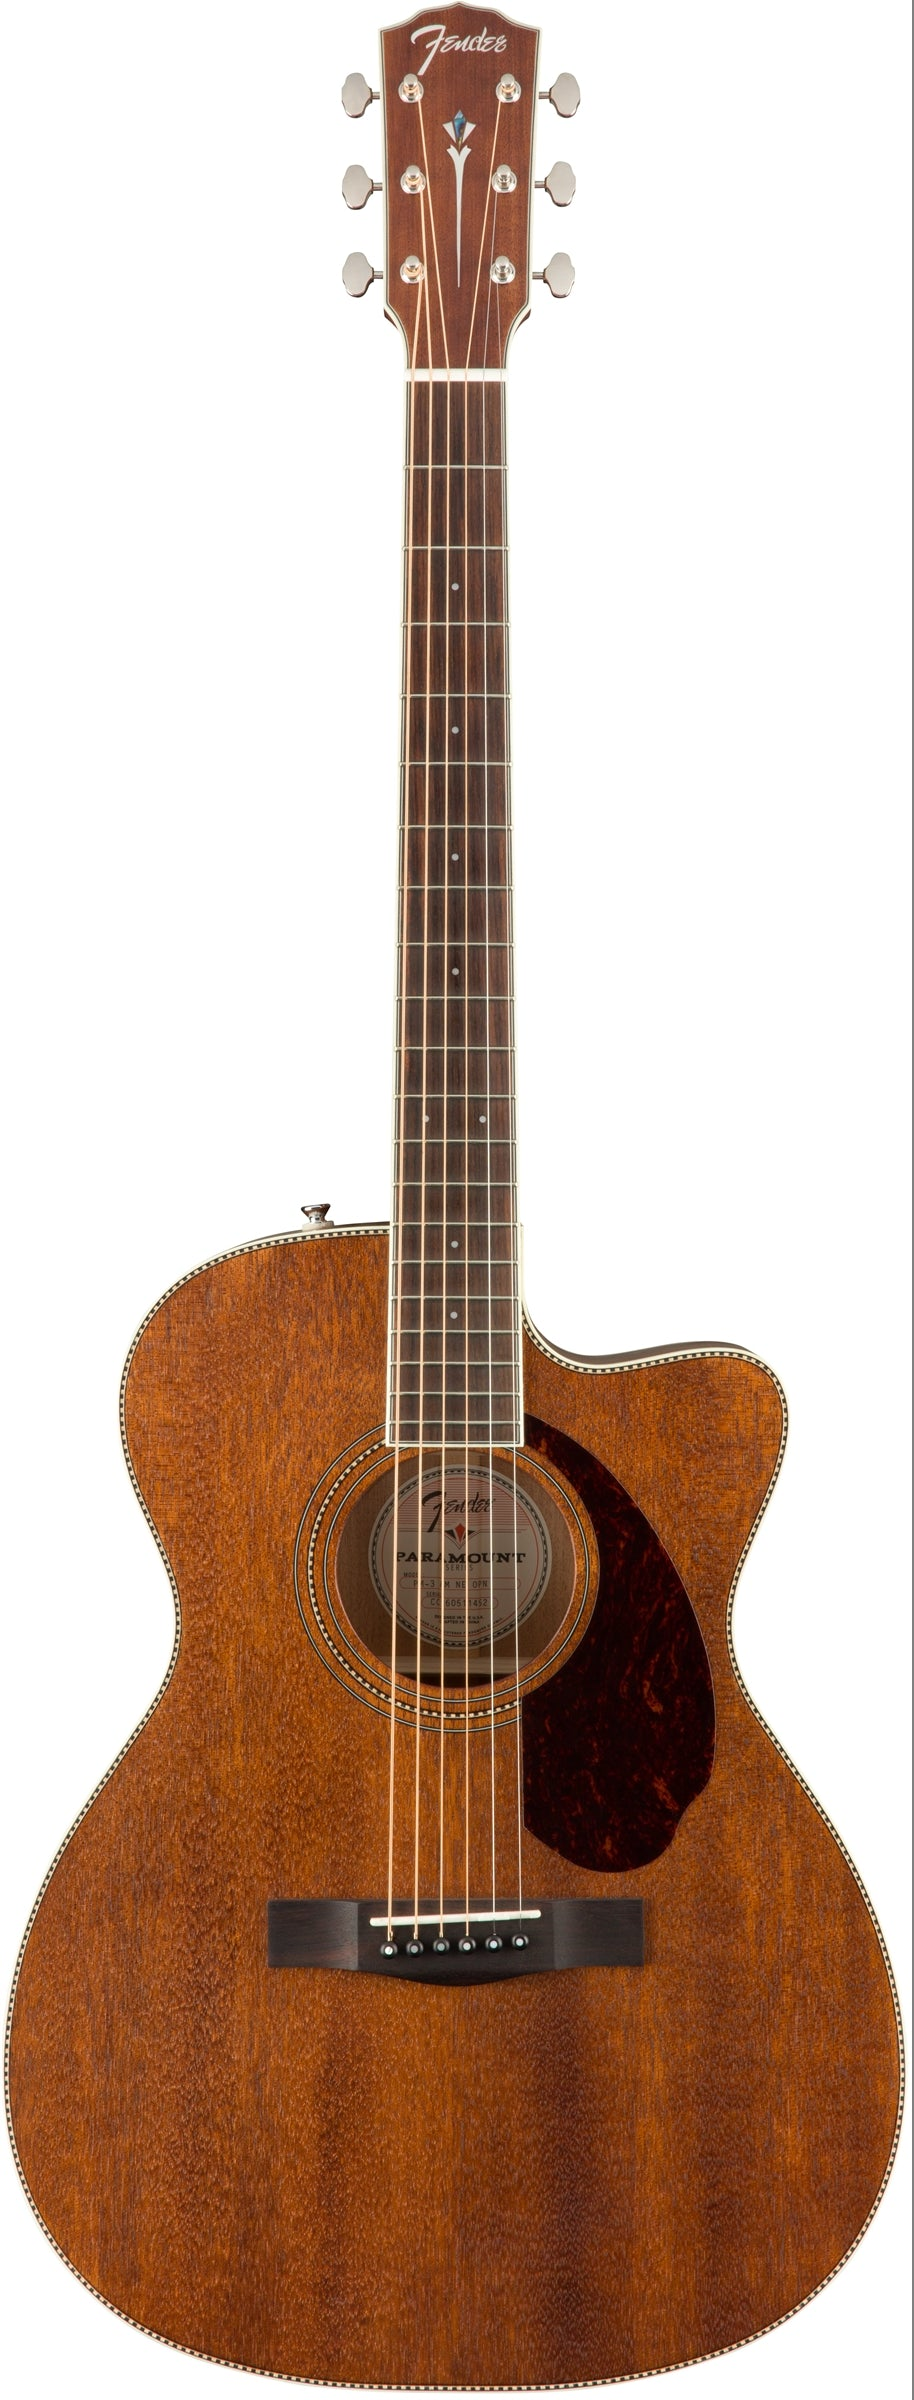 Fender PM-3 Triple 0 All Mahogany Acoustic Guitar - Natural